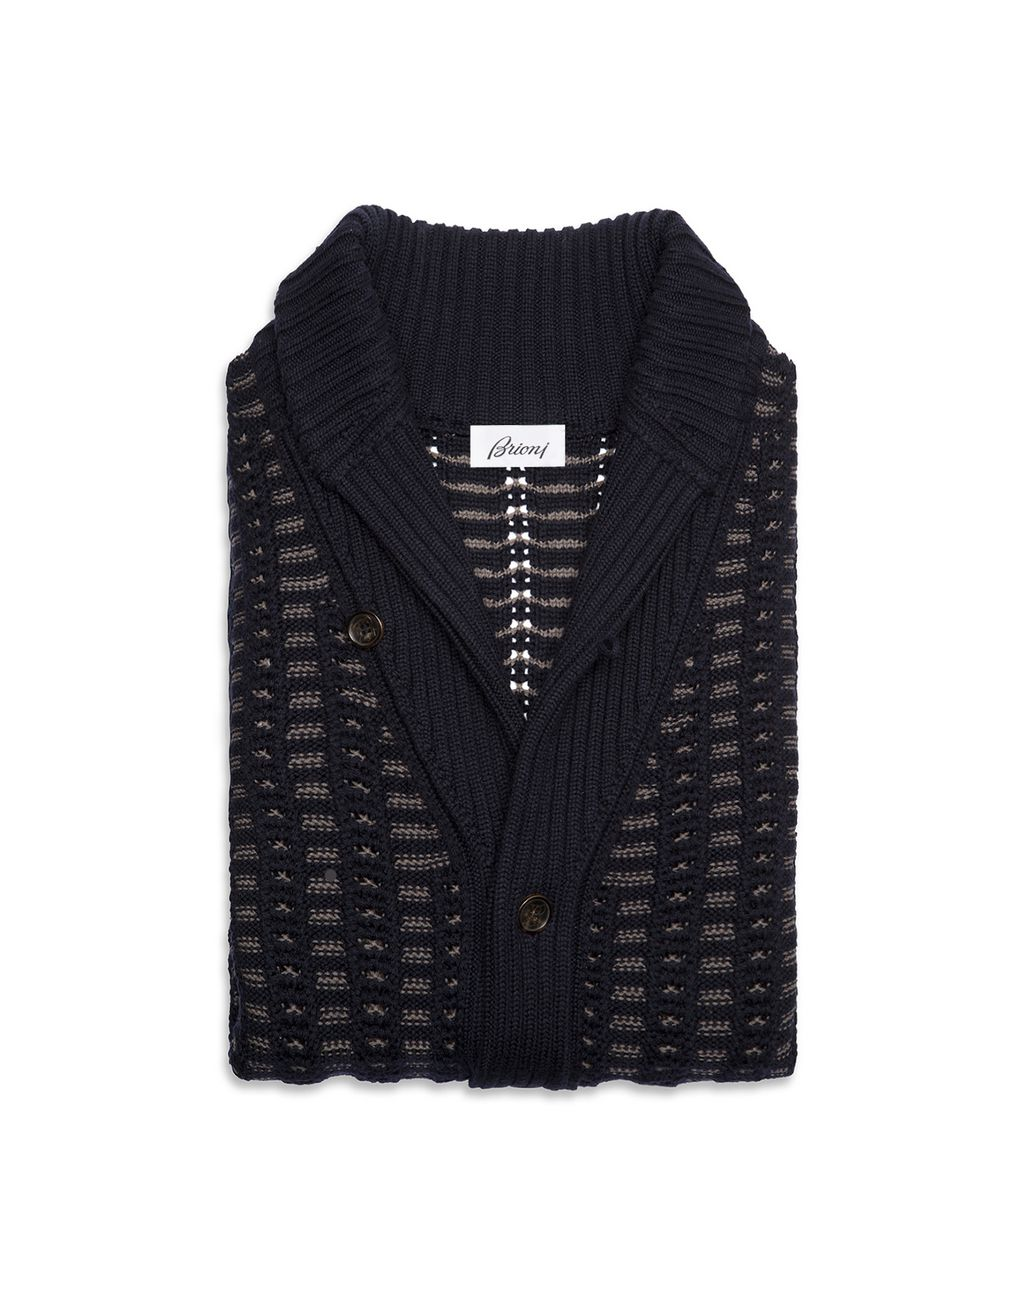 BRIONI Navy and Beige Shawl Cardigan Knitwear U r